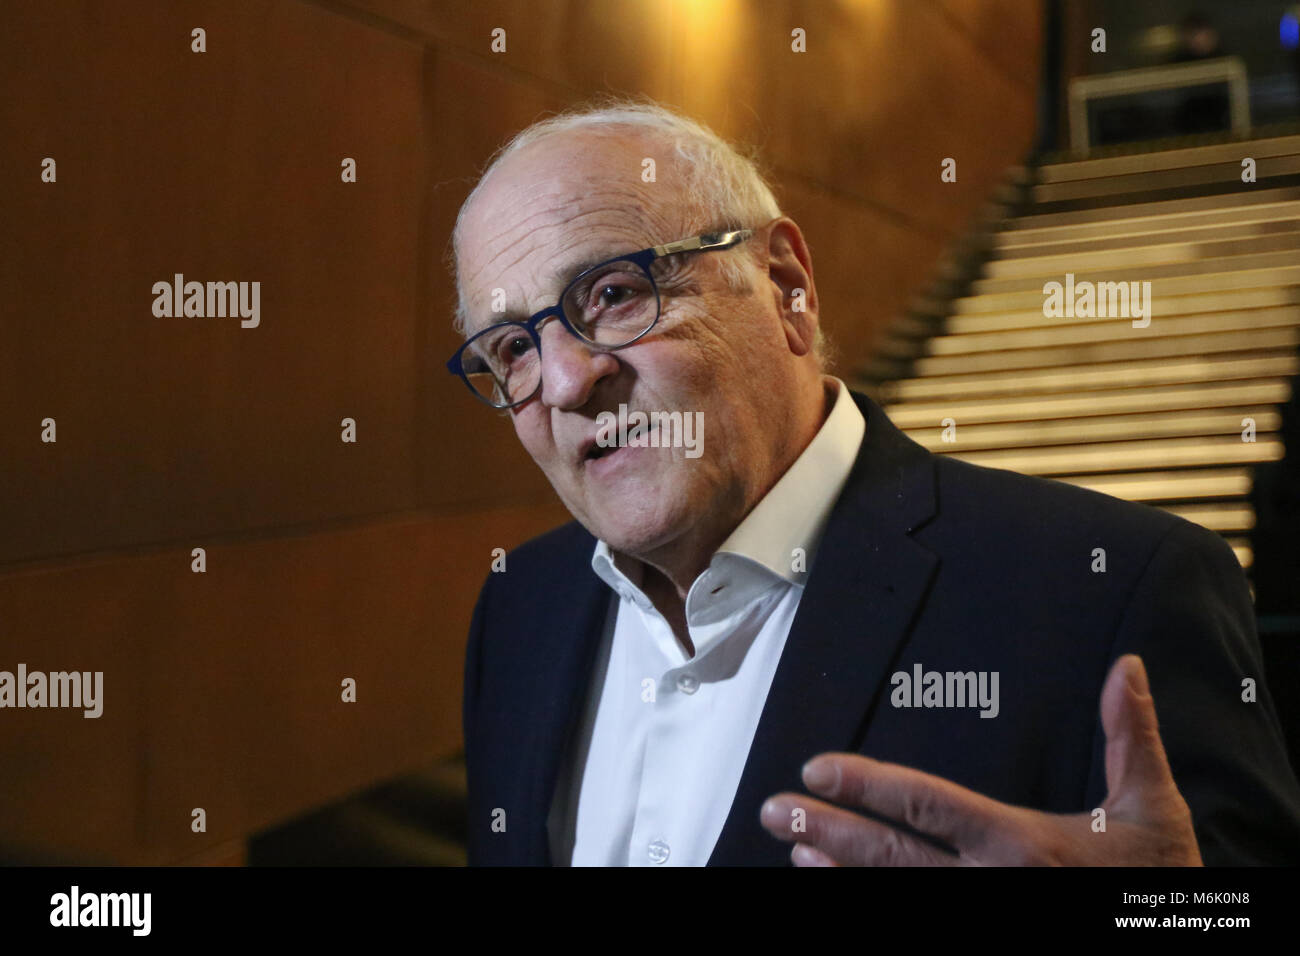 Gdansk, Poland. 4th Mar, 2018. Jewish activist, publicist and director Leszek Leo Kantor visits European Solidarity - Stock Image